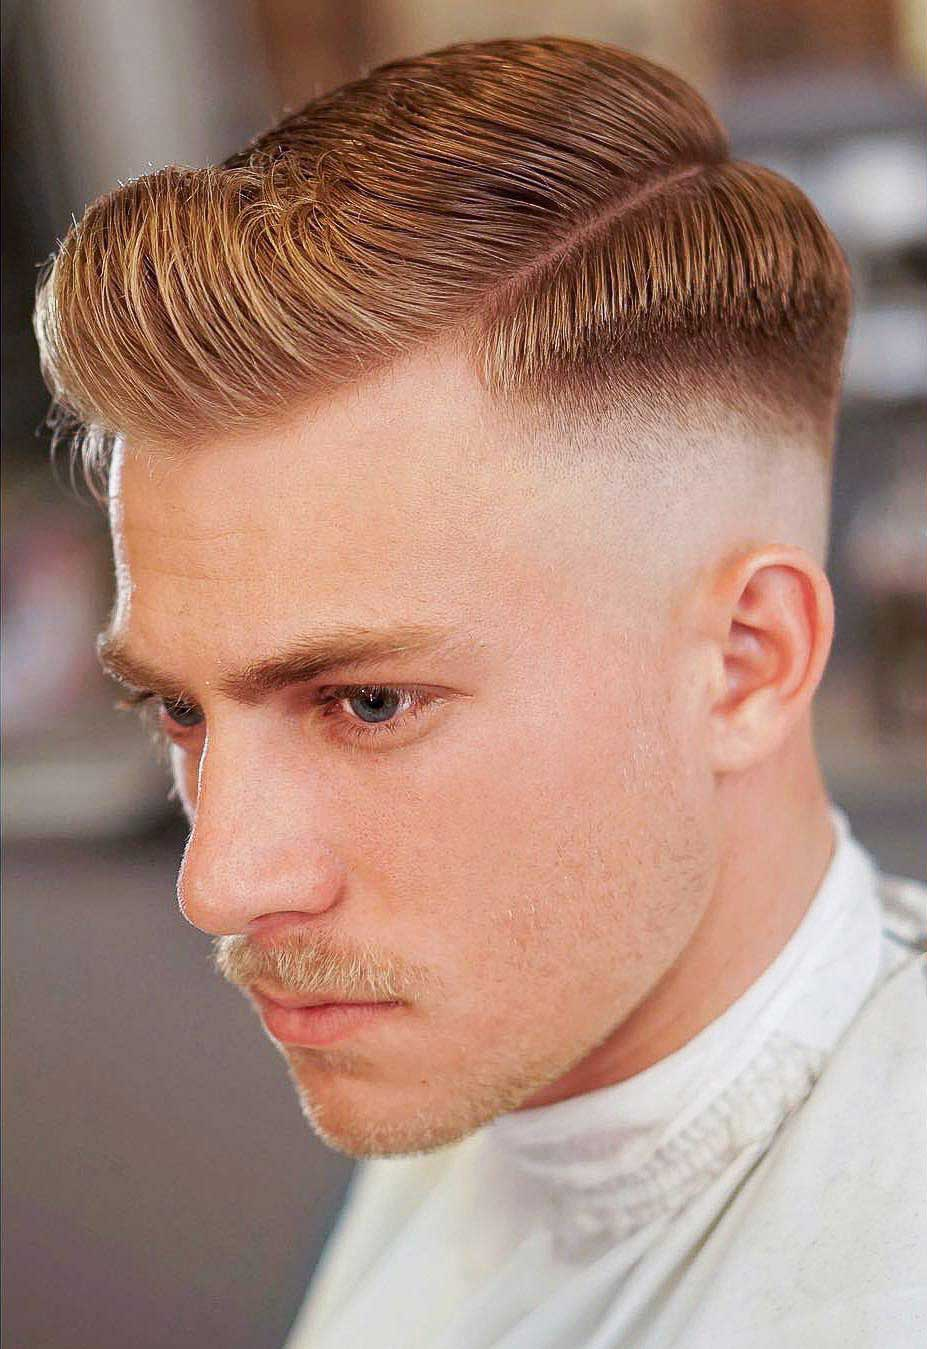 70 Skin Fade Haircut Ideas Trendsetter For 2018